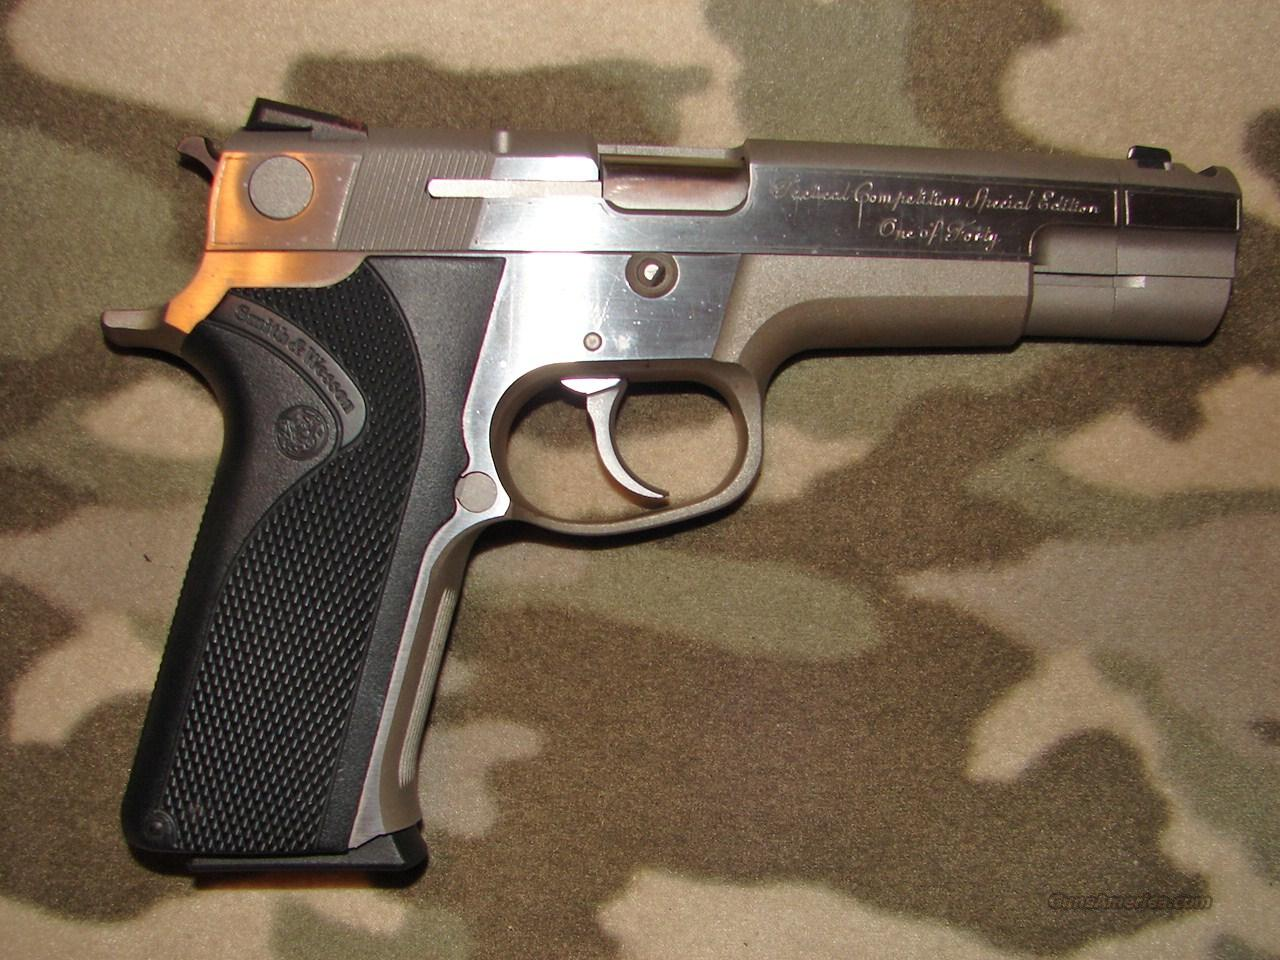 Smith & Wesson Tac  Comp Sp Ed   Guns > Pistols > Smith & Wesson Pistols - Autos > Steel Frame